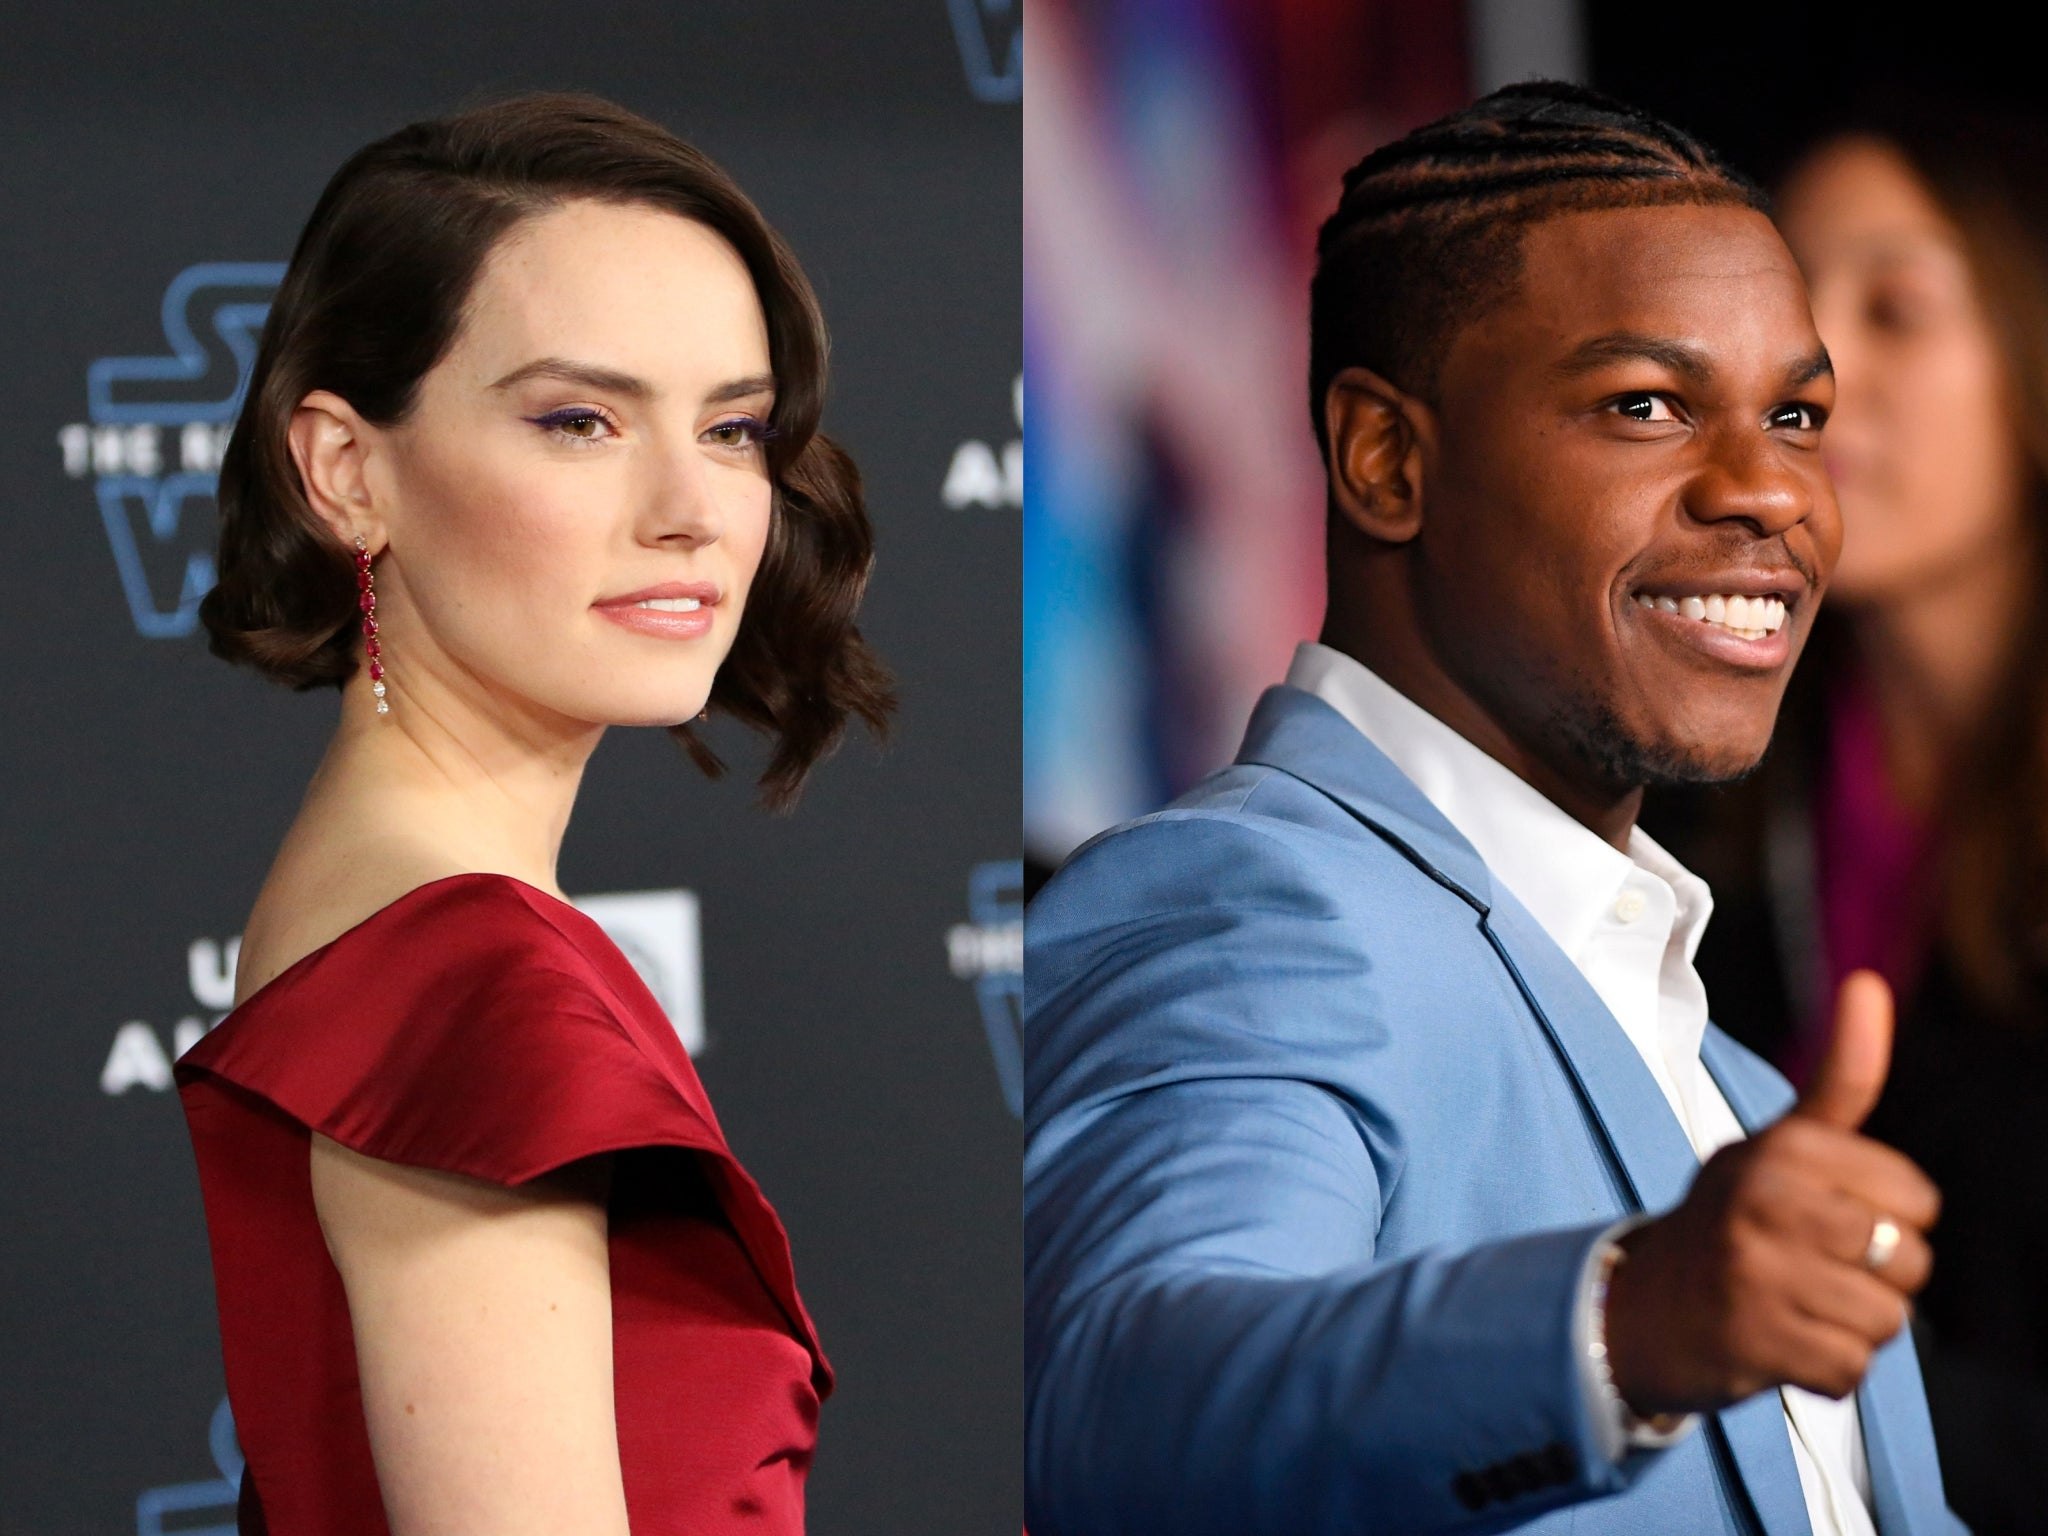 Star Wars world premiere: Best looks on the blue carpet, from Daisy Ridley to John Boyega